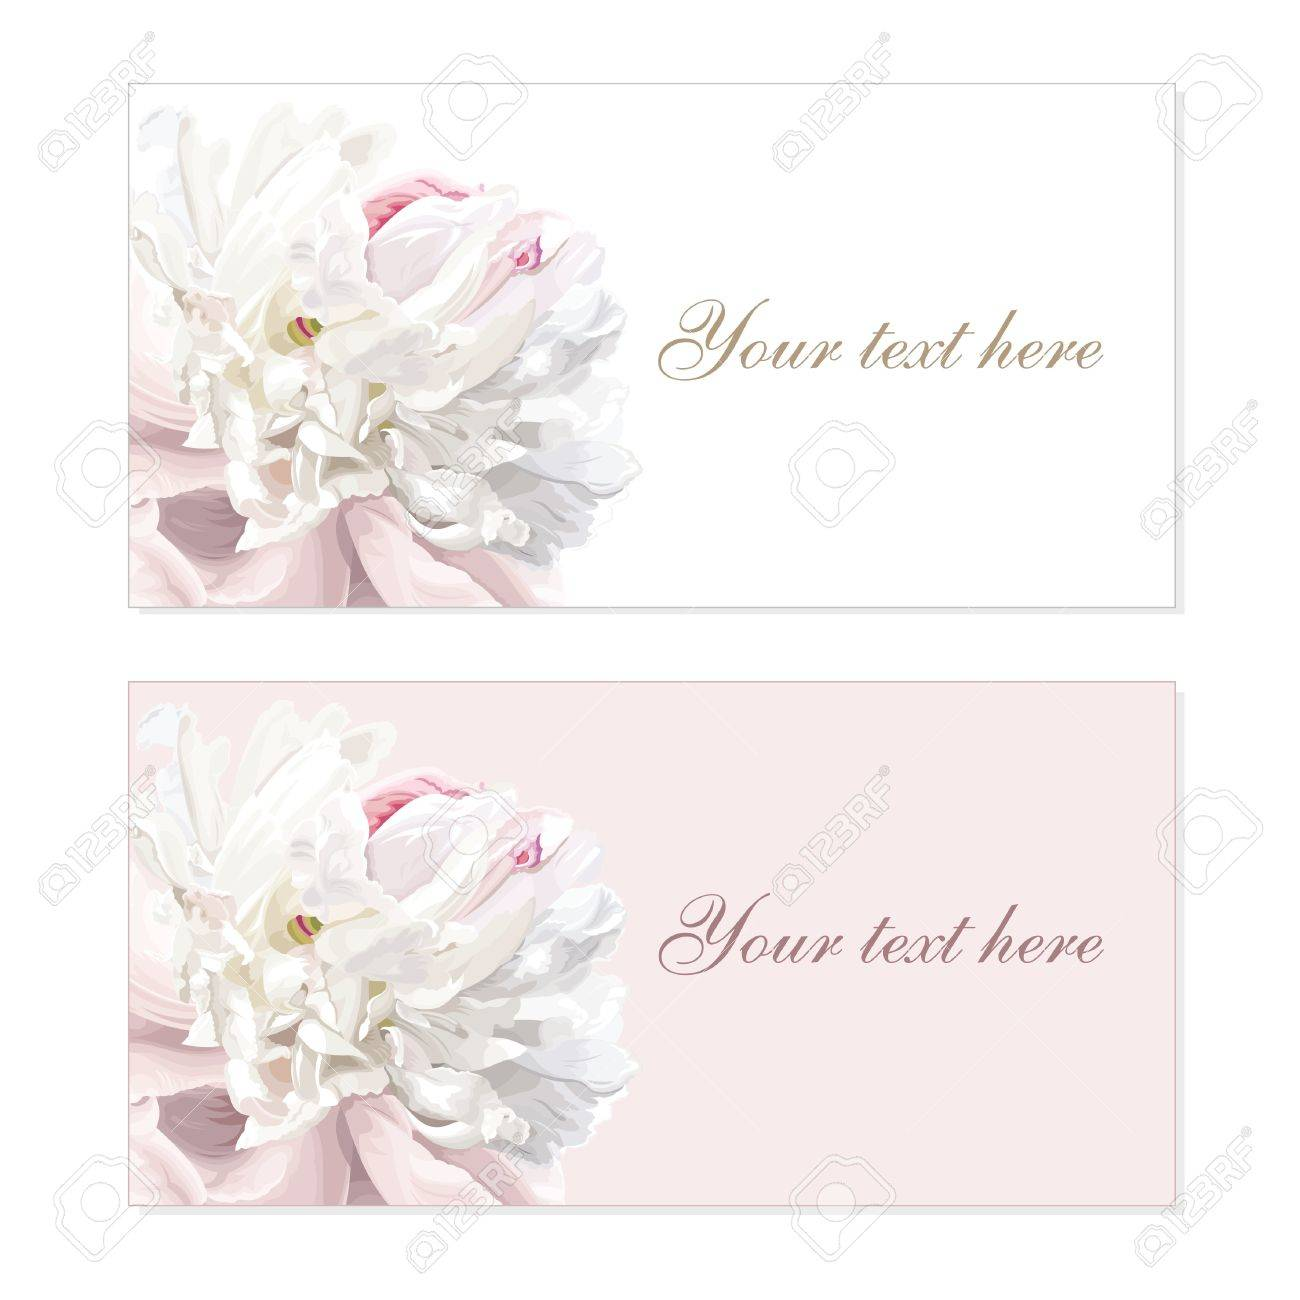 Greeting cards with luxurious flower cards painted in pastel colors Stock Vector - 9931415